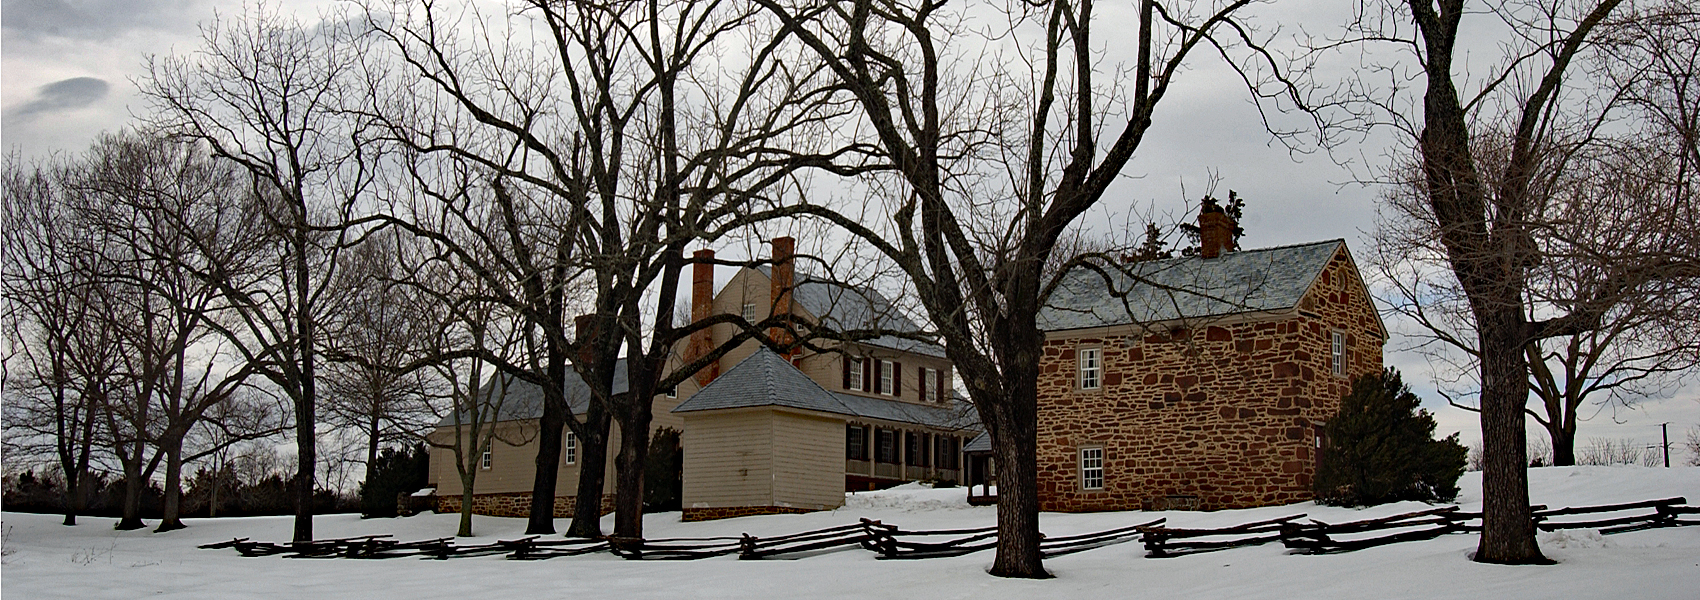 Sully's historic house in snow